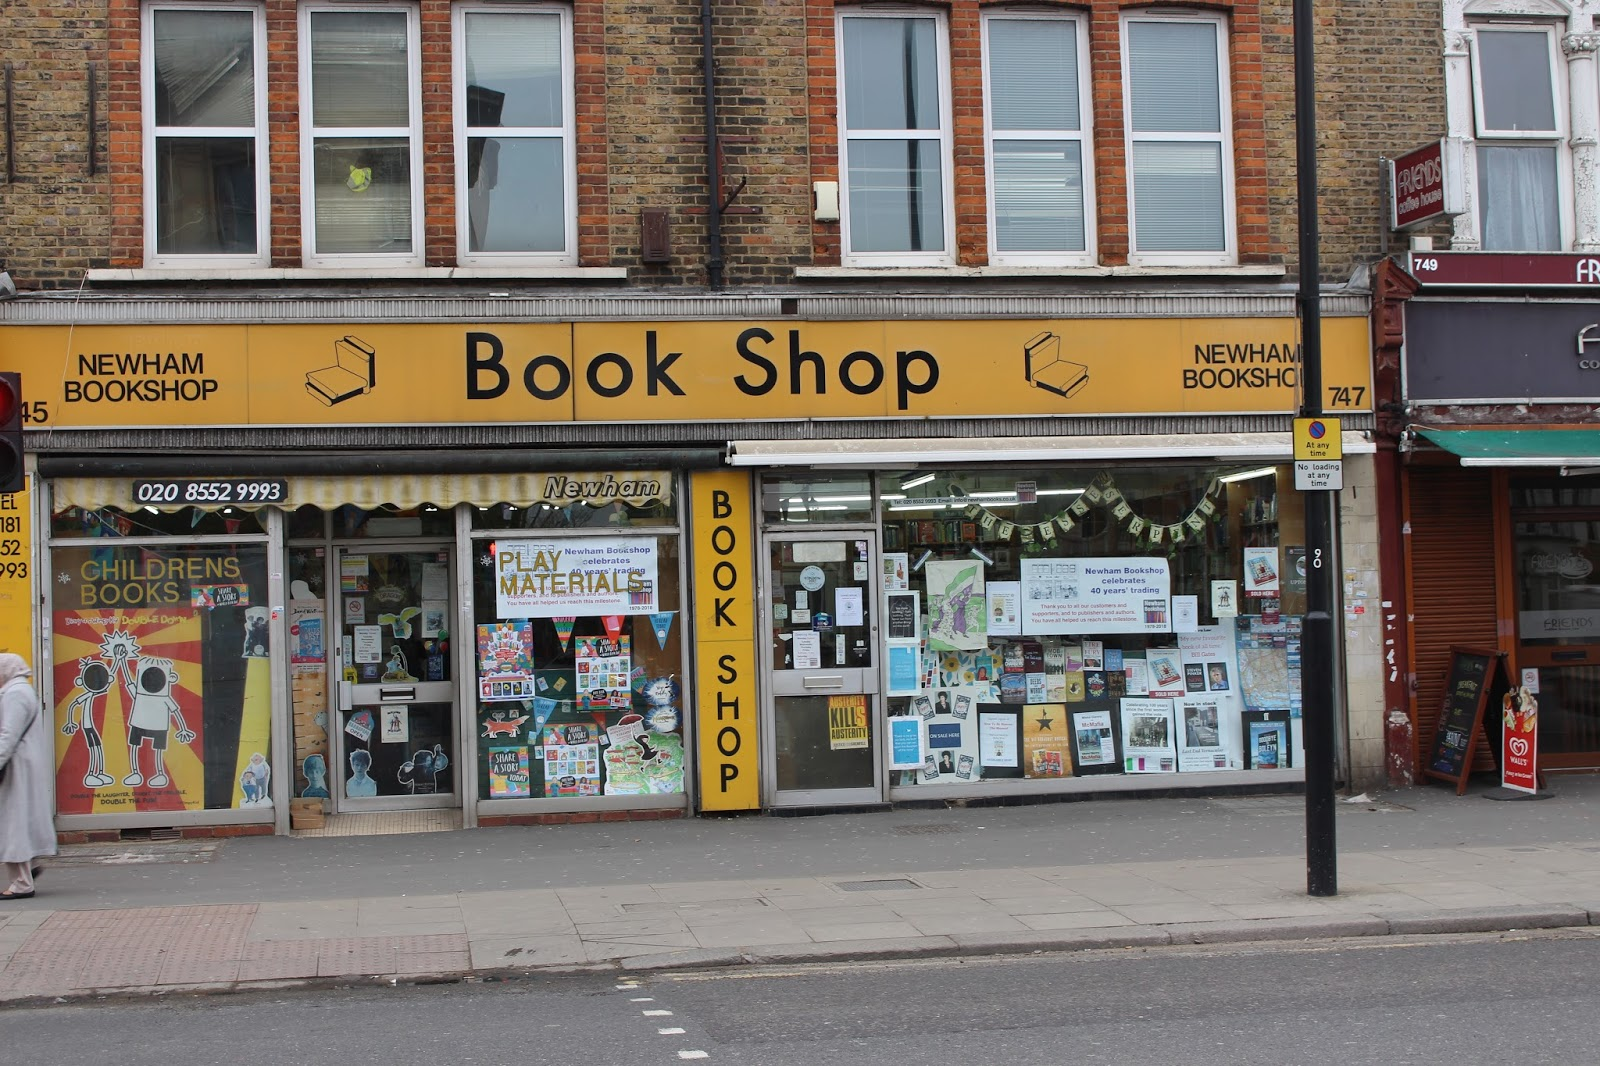 E7 Now & Then: Happy birthday, Newham Bookshop!